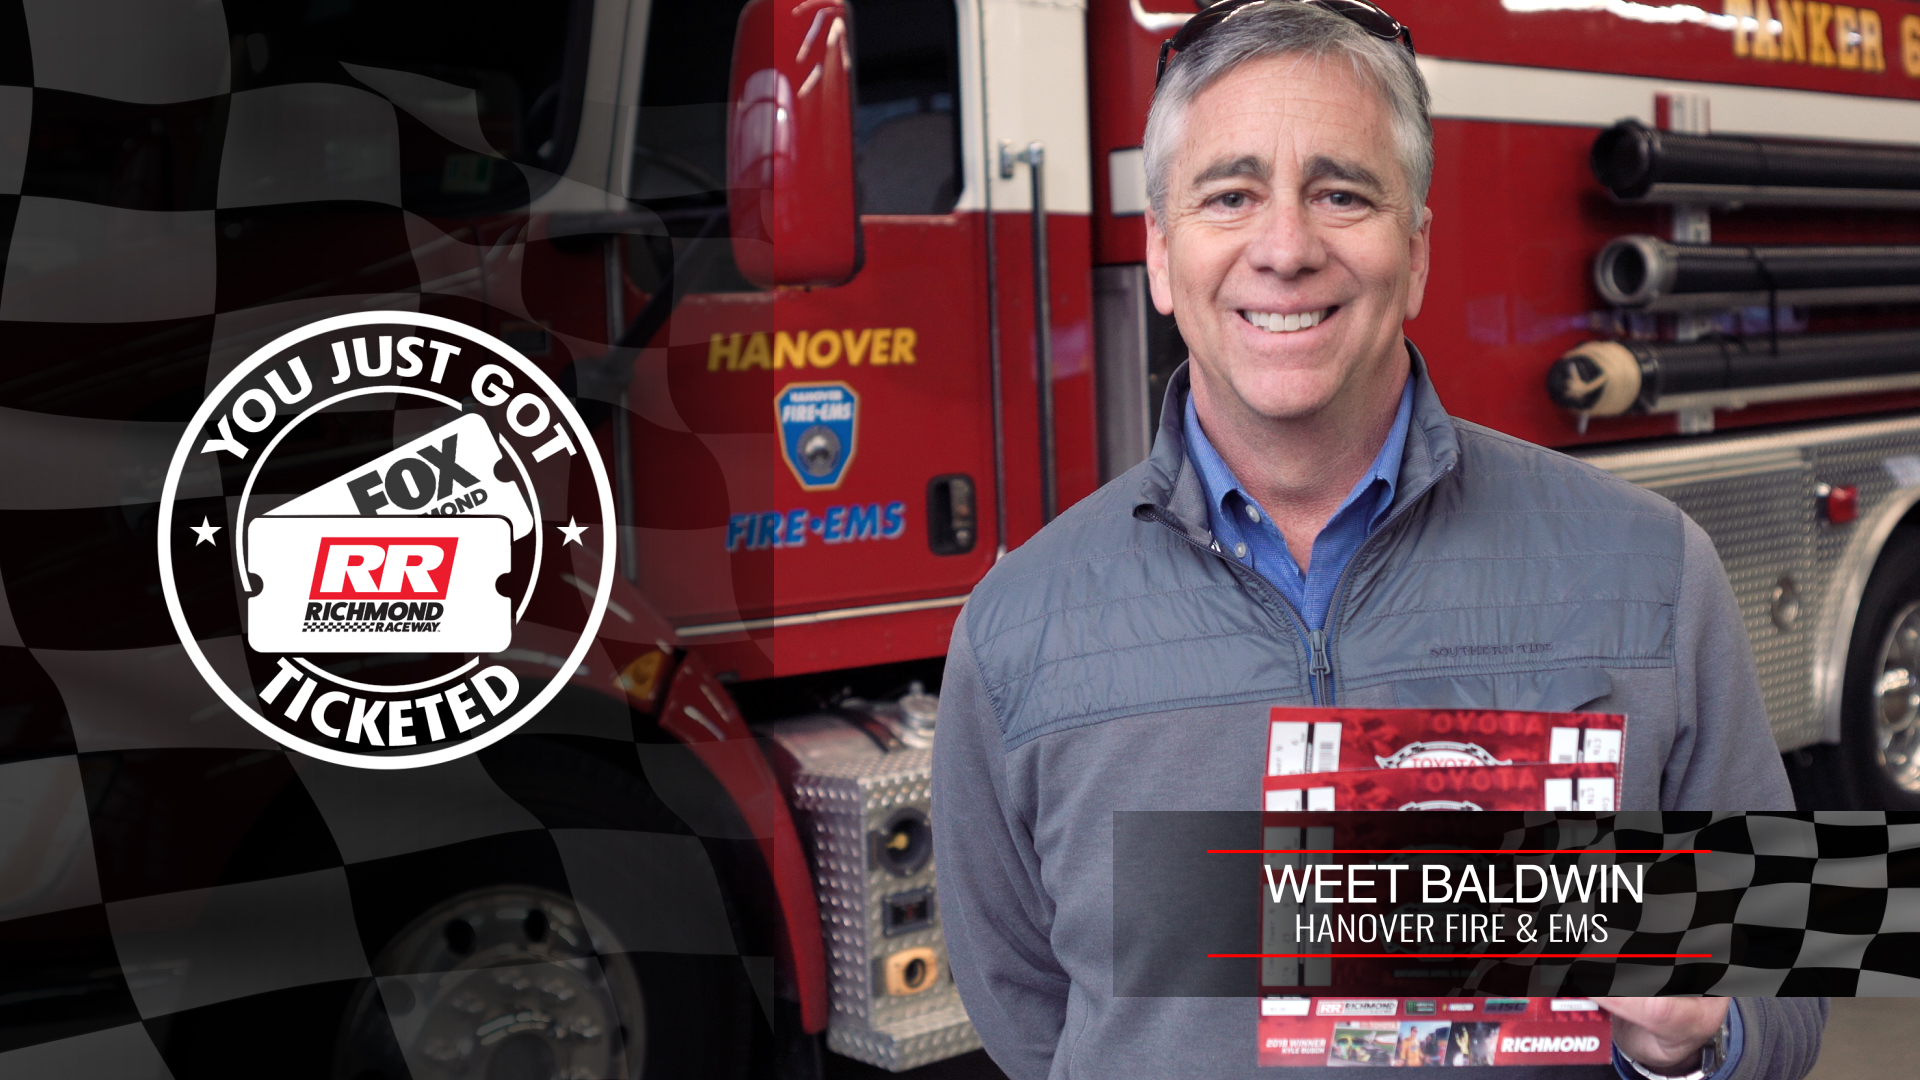 Weet Baldwin, Hanover County's 2019 Volunteer Firefighter of the Year